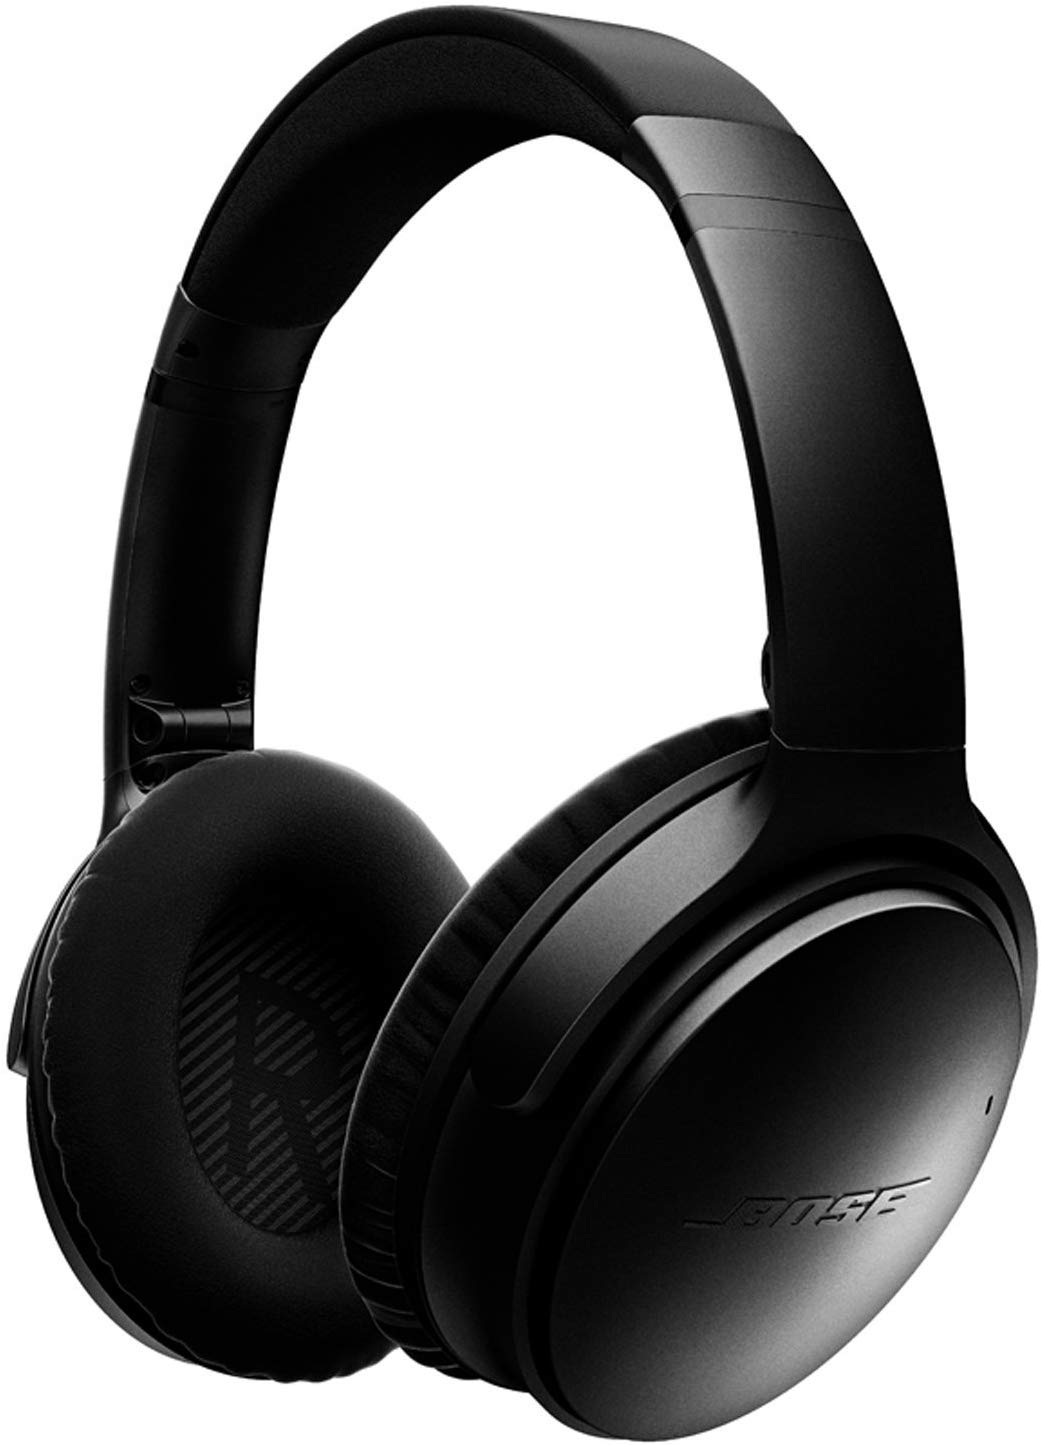 Bose QuietComfort 35 Wireless Over-Ear Headphones, Noise Cancelling